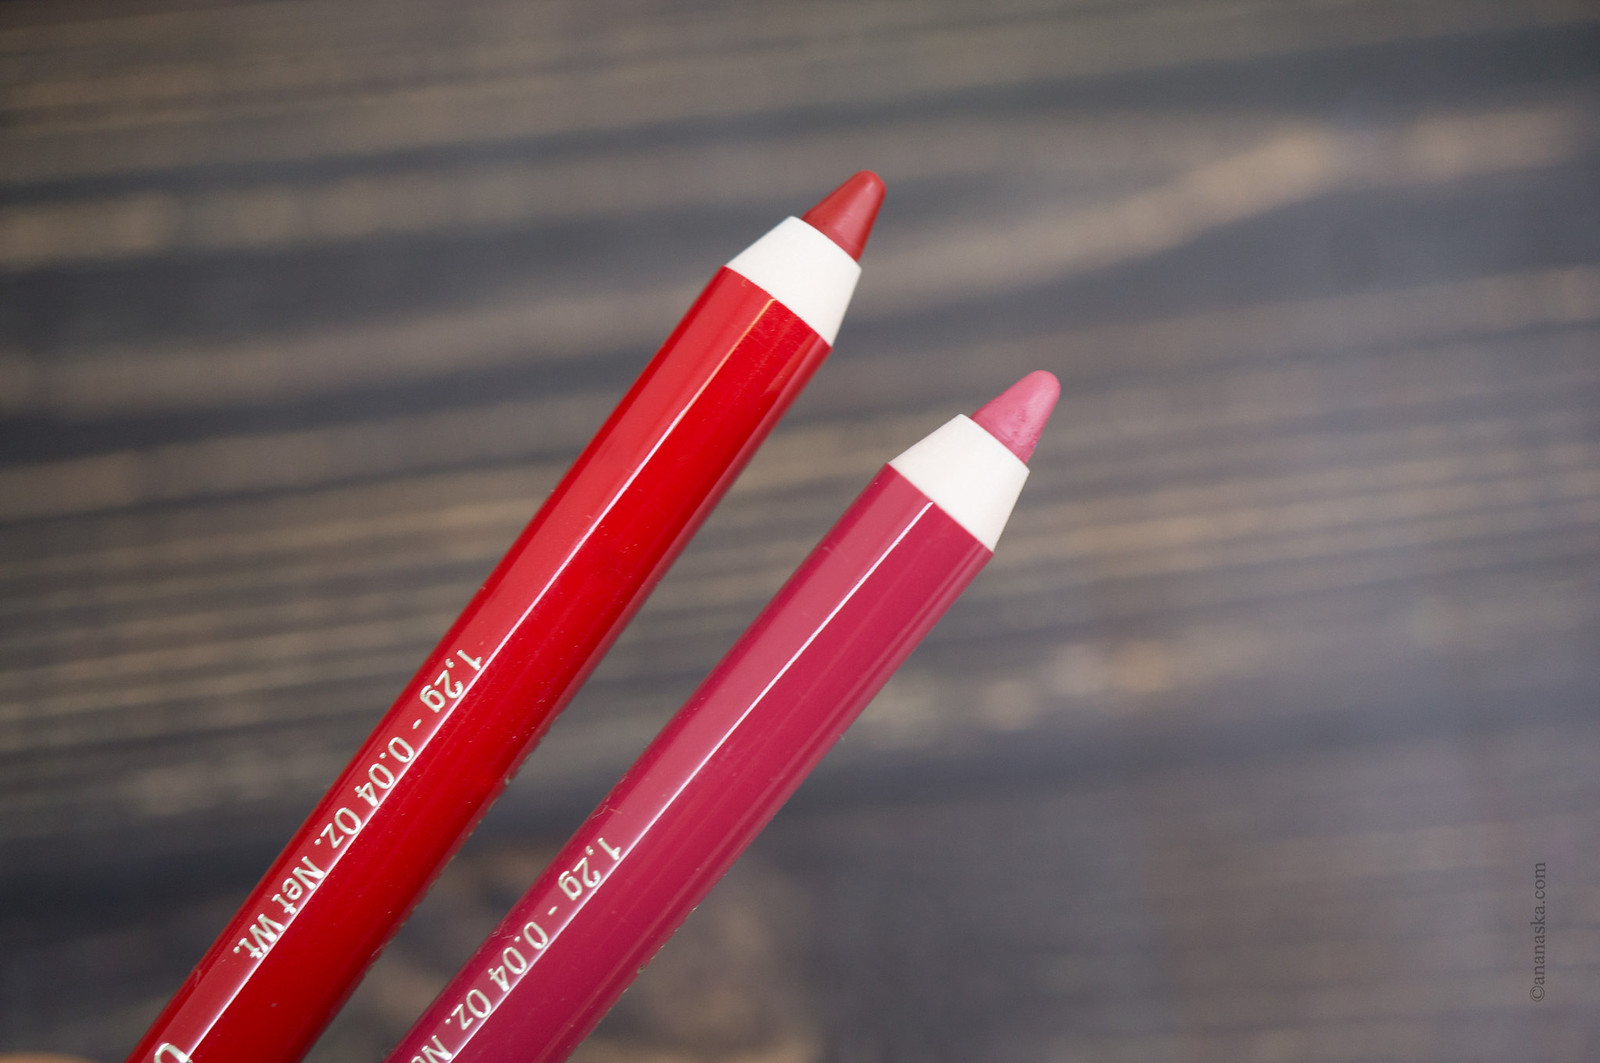 Clarins Crayon Levres: 05 Roseberry, 06 Red